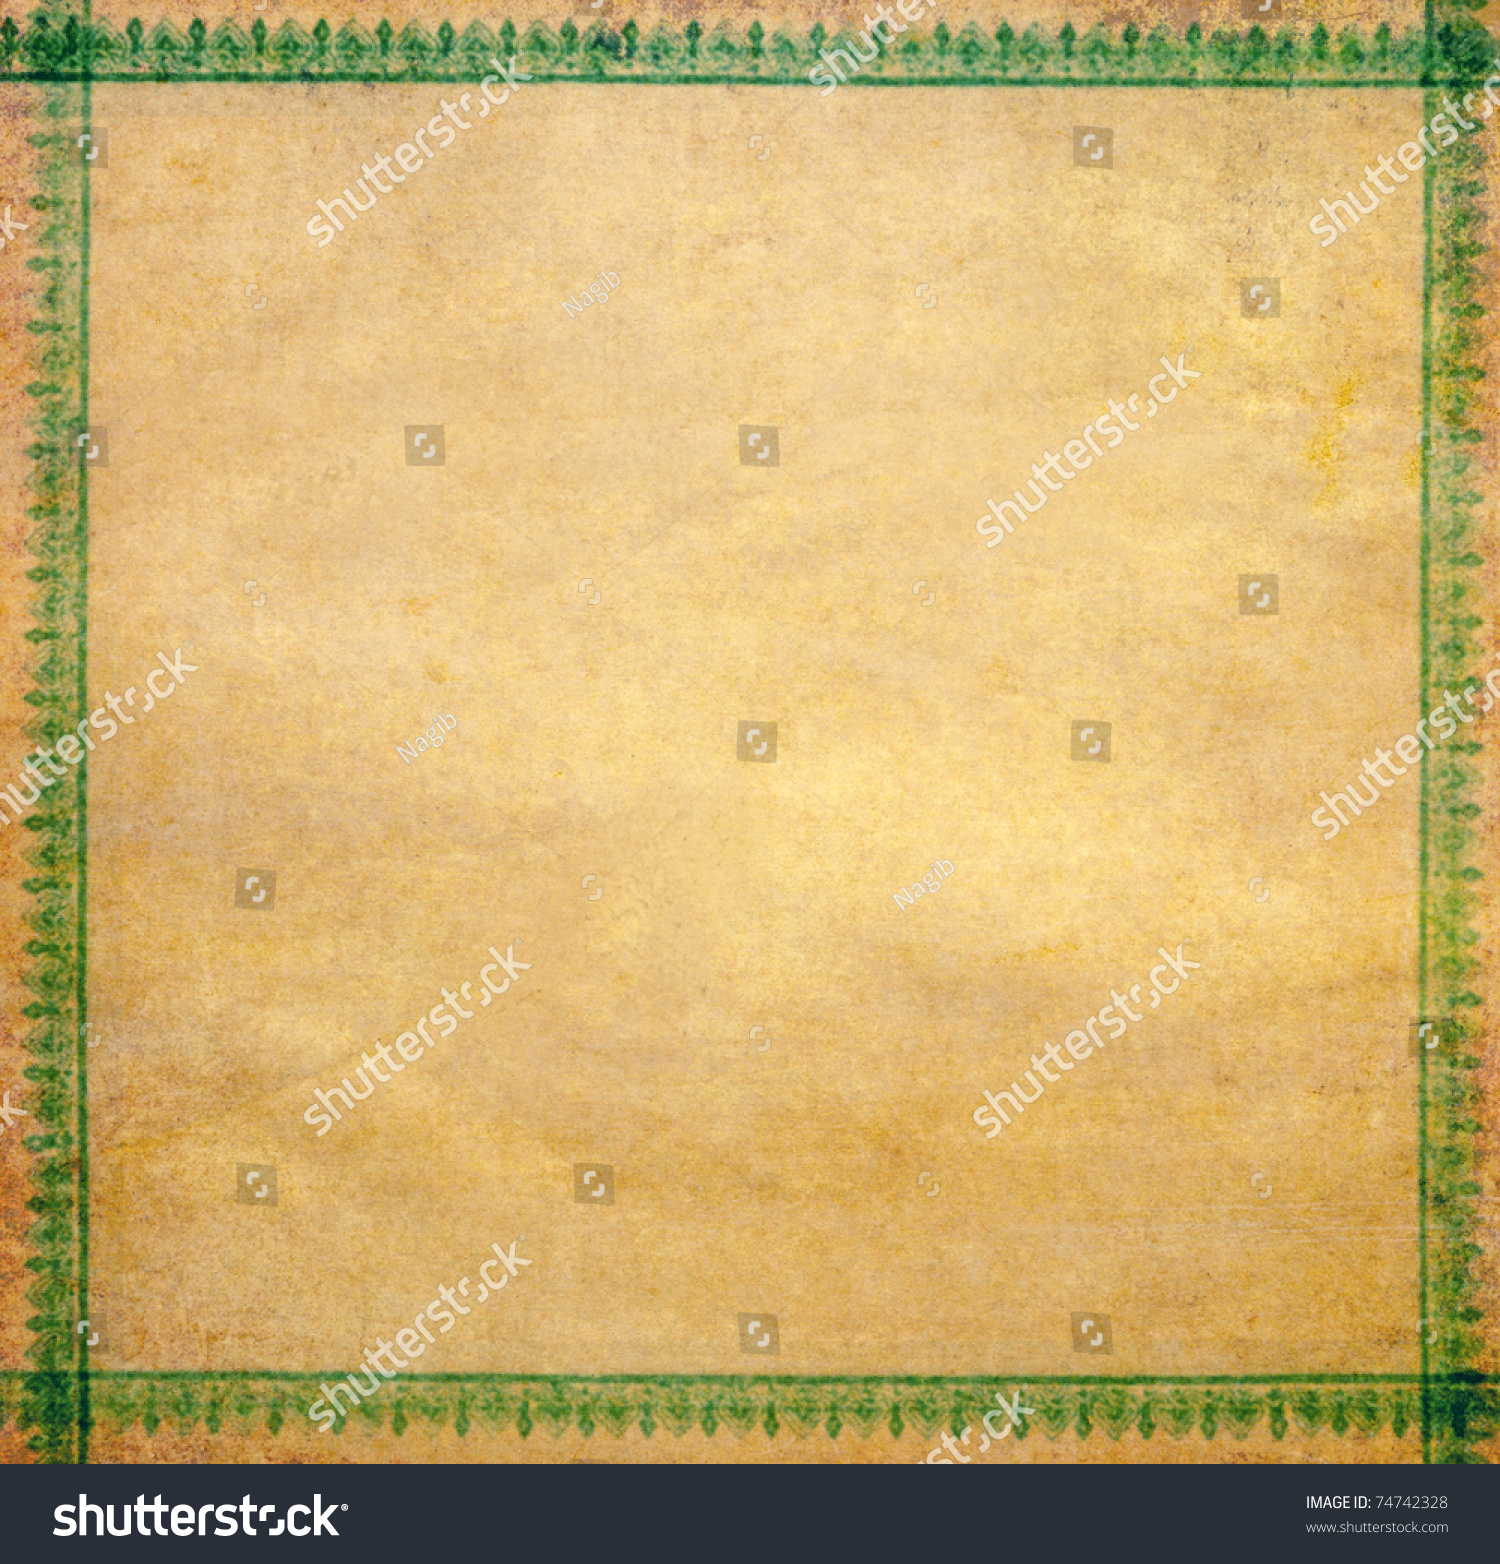 old scroll background stock illustration 74742328 - shutterstock, Powerpoint templates